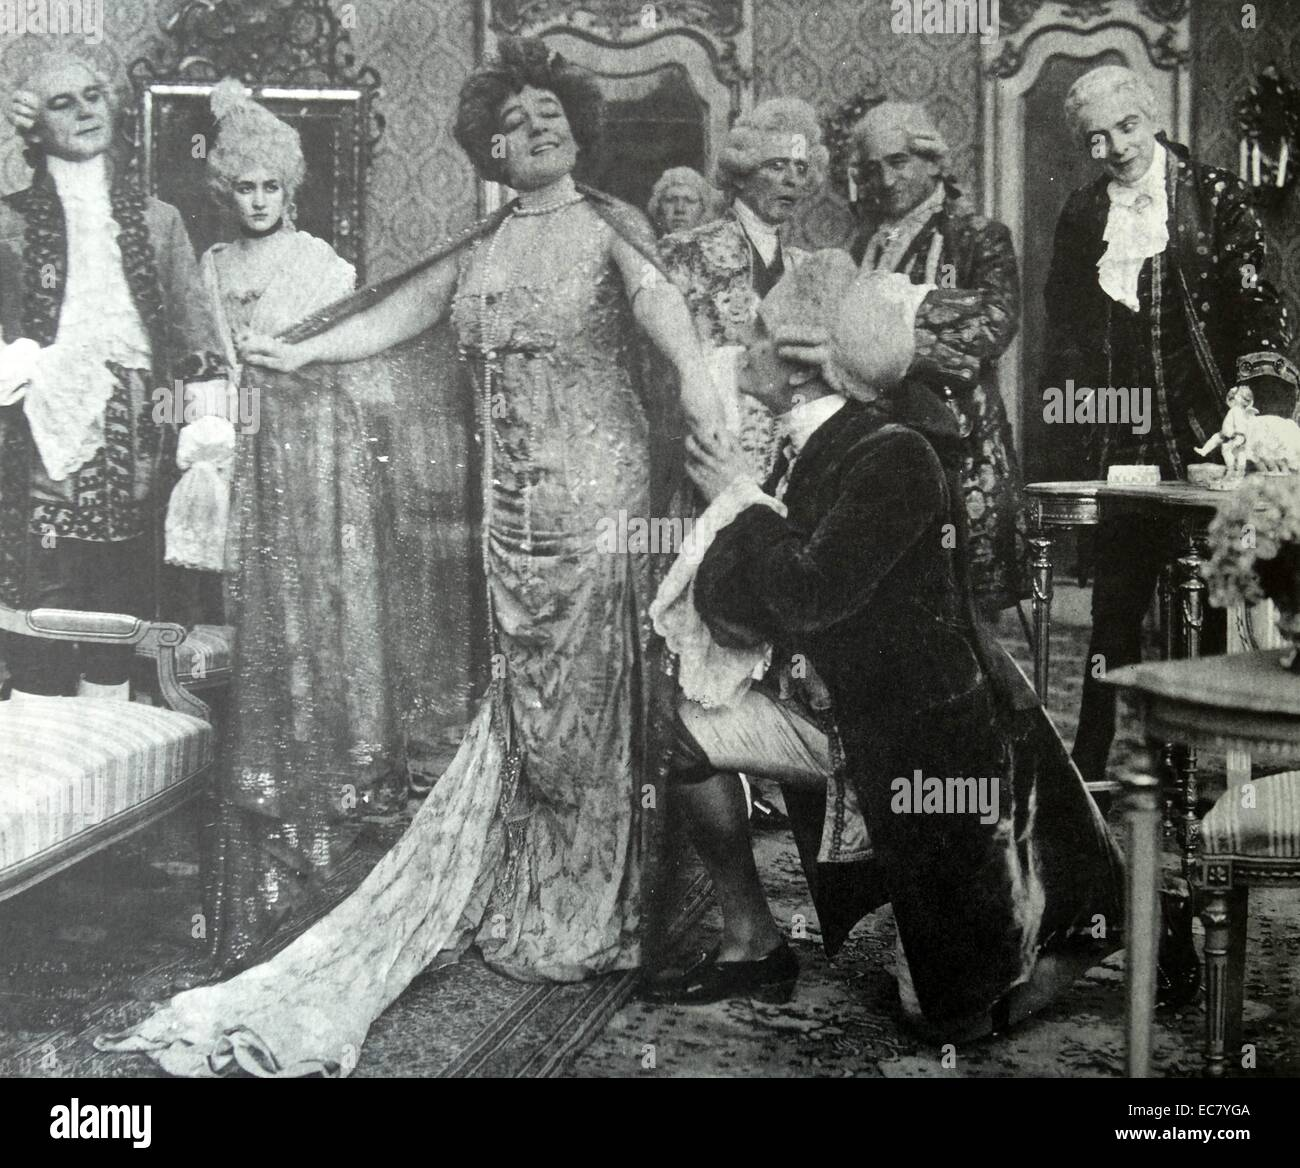 Mrs Leslie Carter in the play 'Du Barry' 1902. - Stock Image